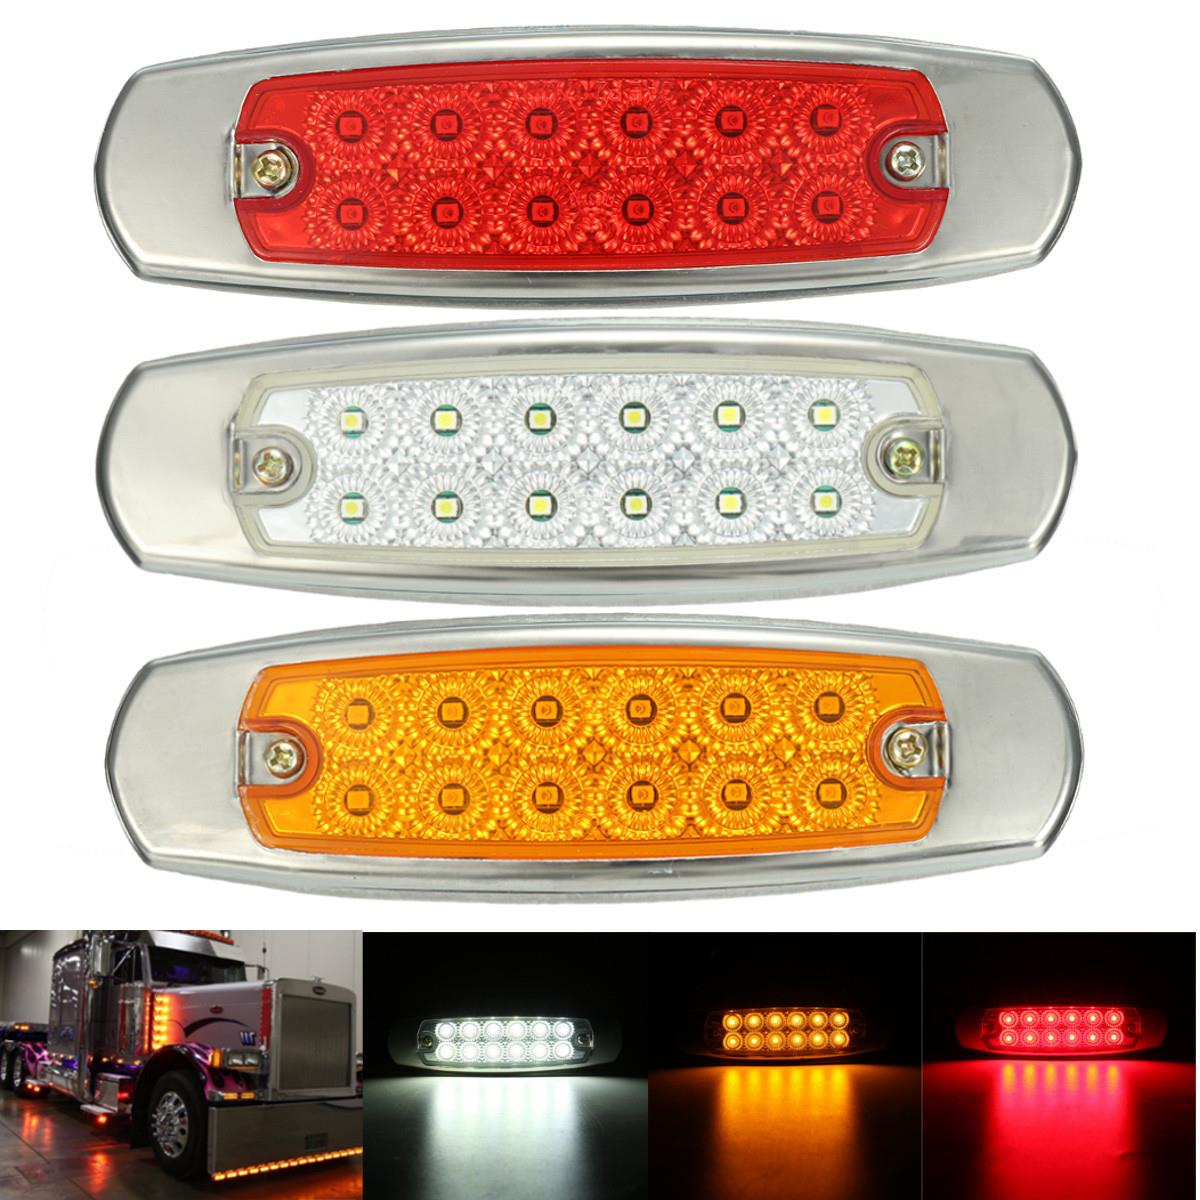 1Pcs Universal 12V DC 12 LED Side Marker Indicator Light Lamp Truck Trailers Lorry Bus Turn Signal Light Lamp 1pcs motorcycle turn signal light 12 led moto flasher universal indicator lamp night light fog spot light lamp waterproof